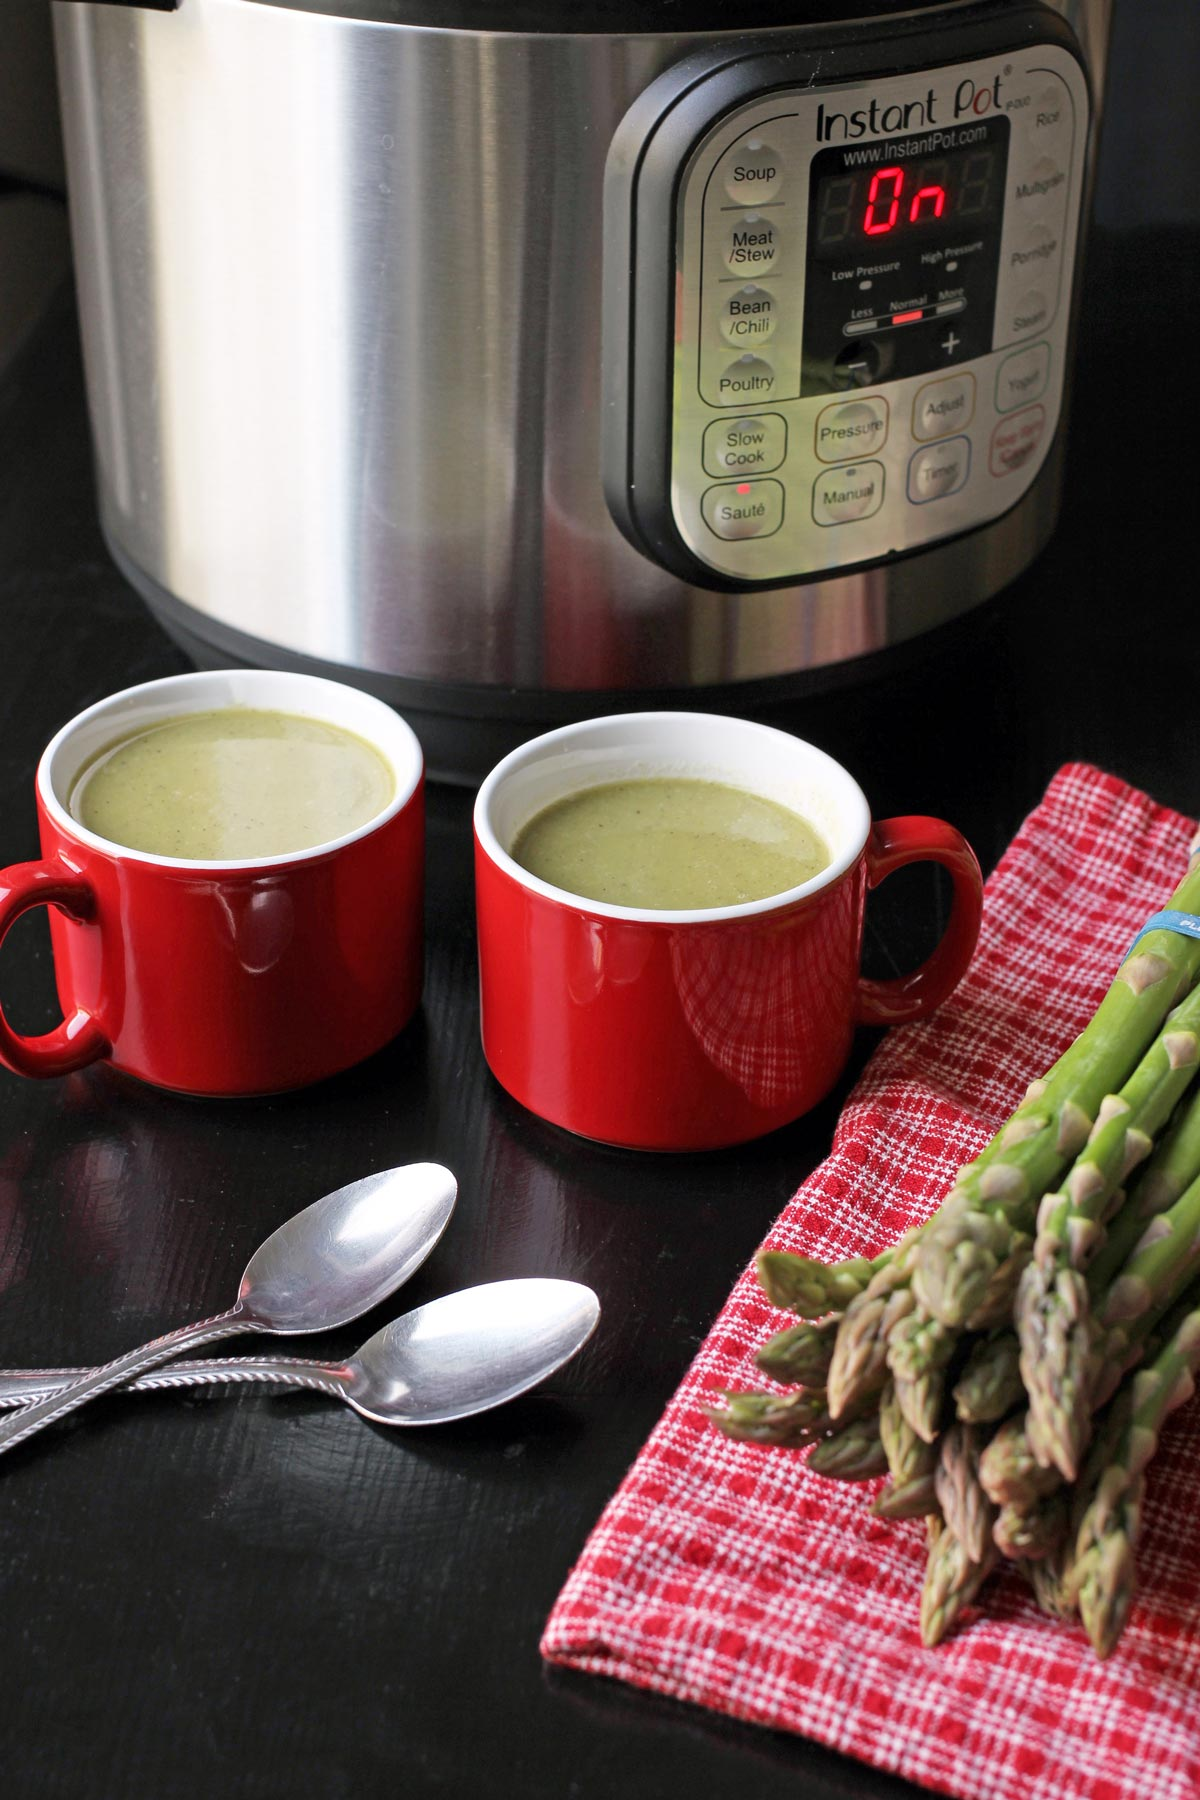 red mugs of soup by instant pot